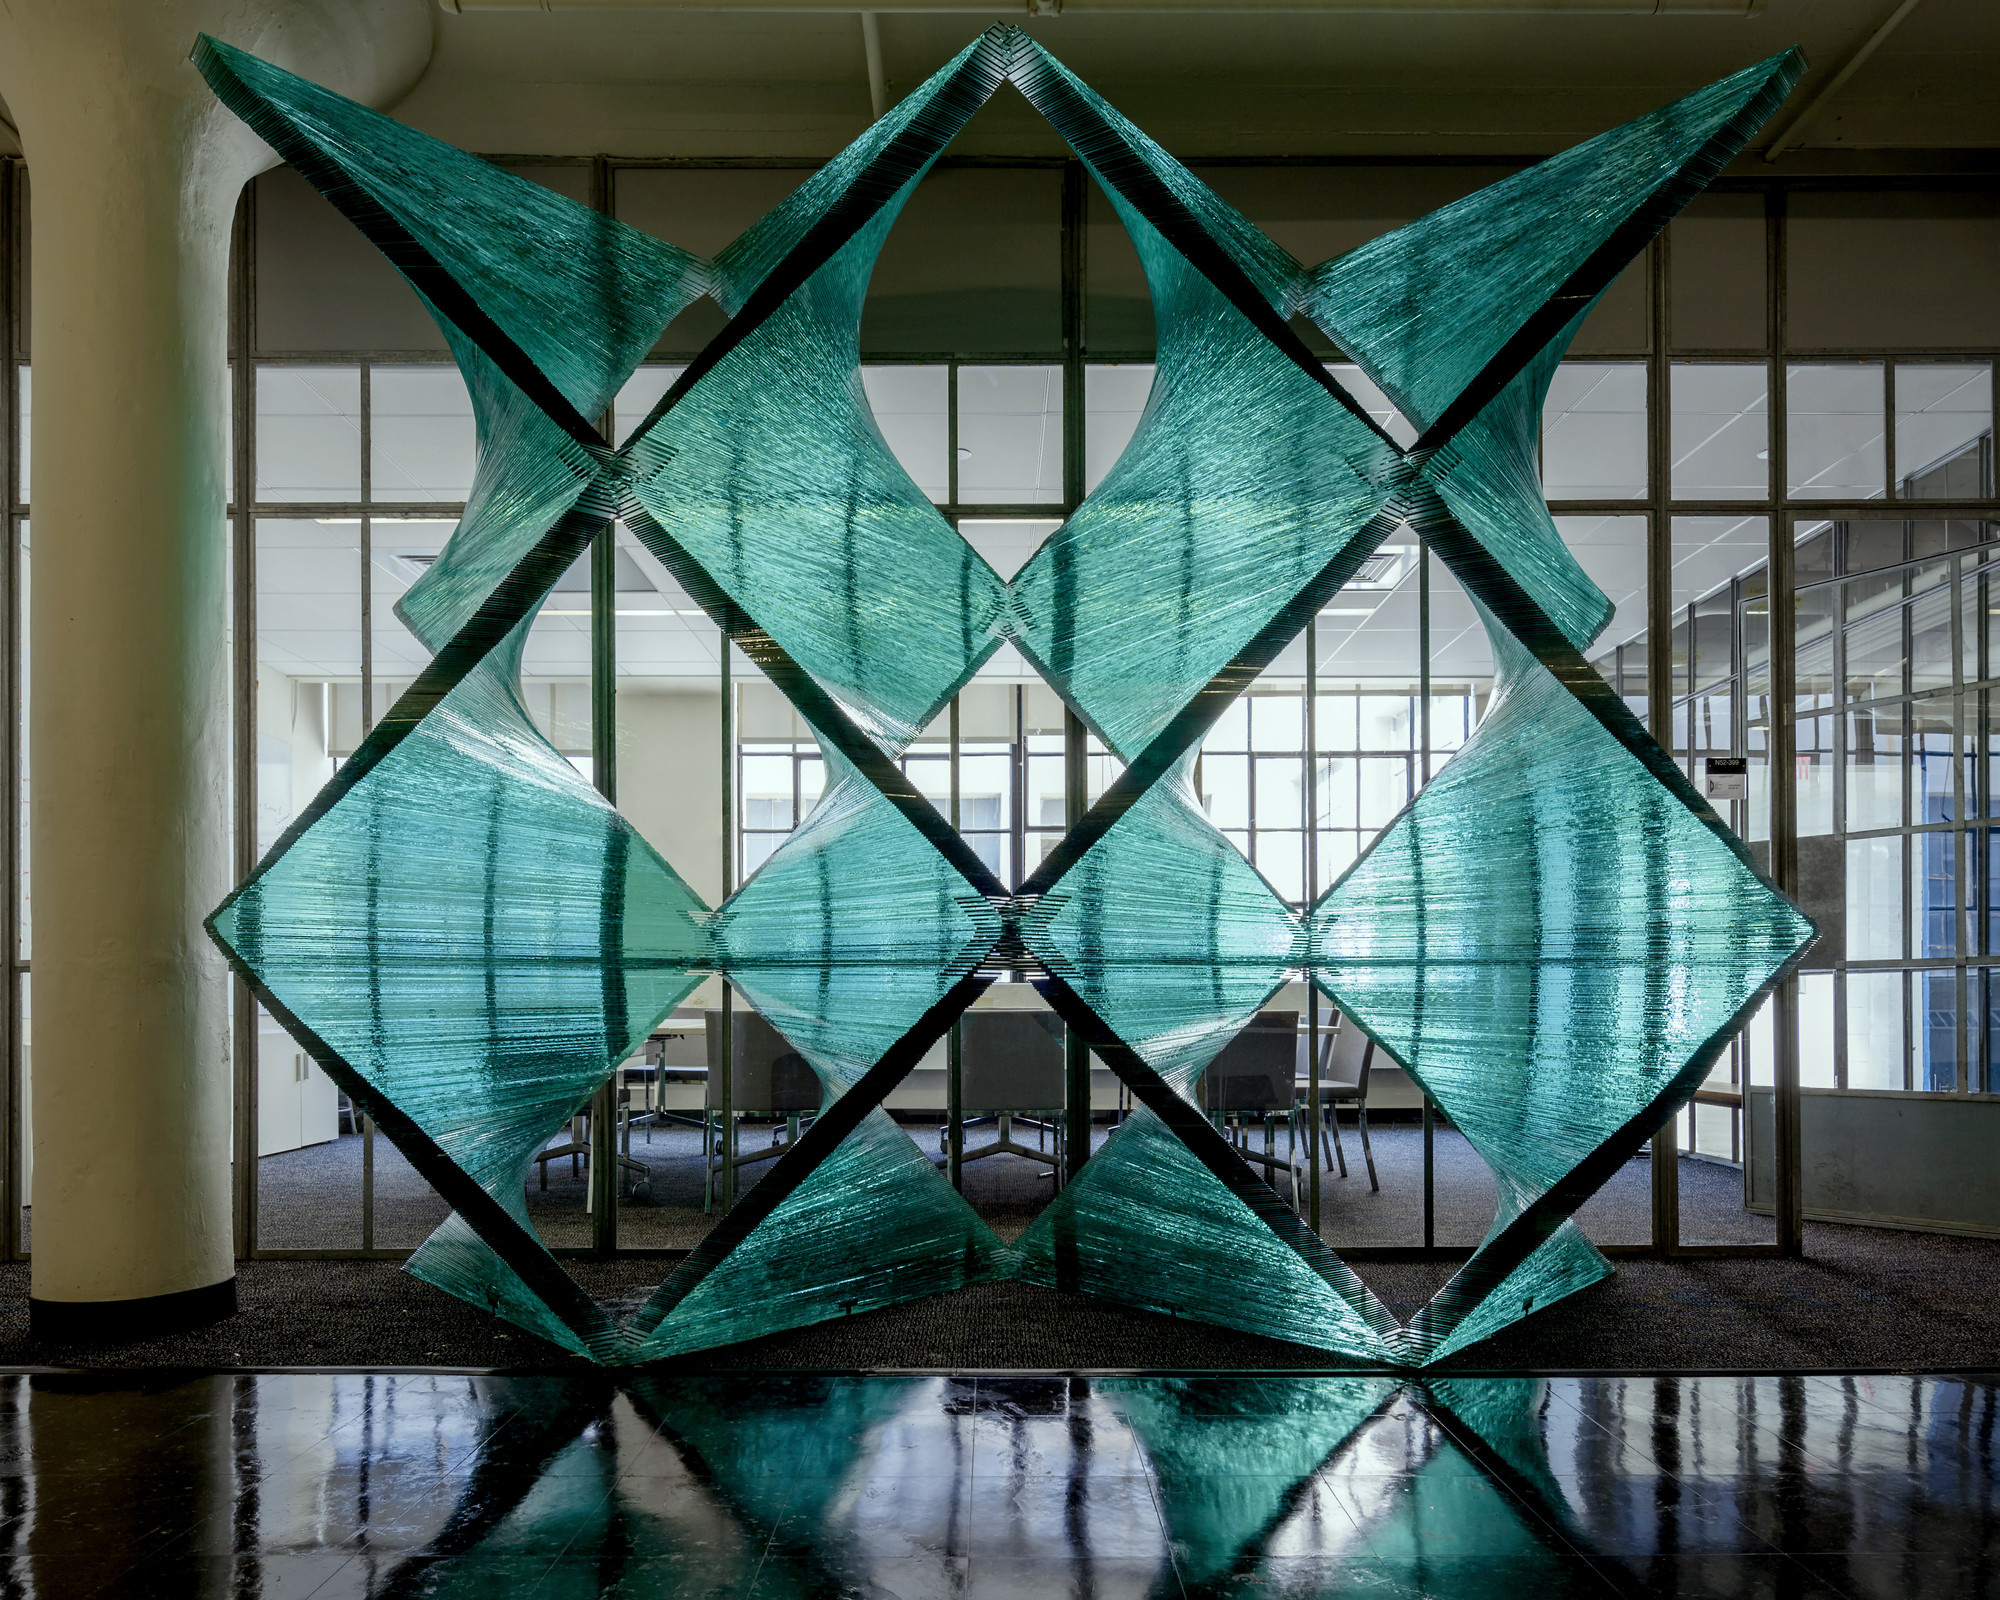 Cristina Parreño Investigates the Tectonics of Transparency With Glass Wall Prototype, © Jane Messinger